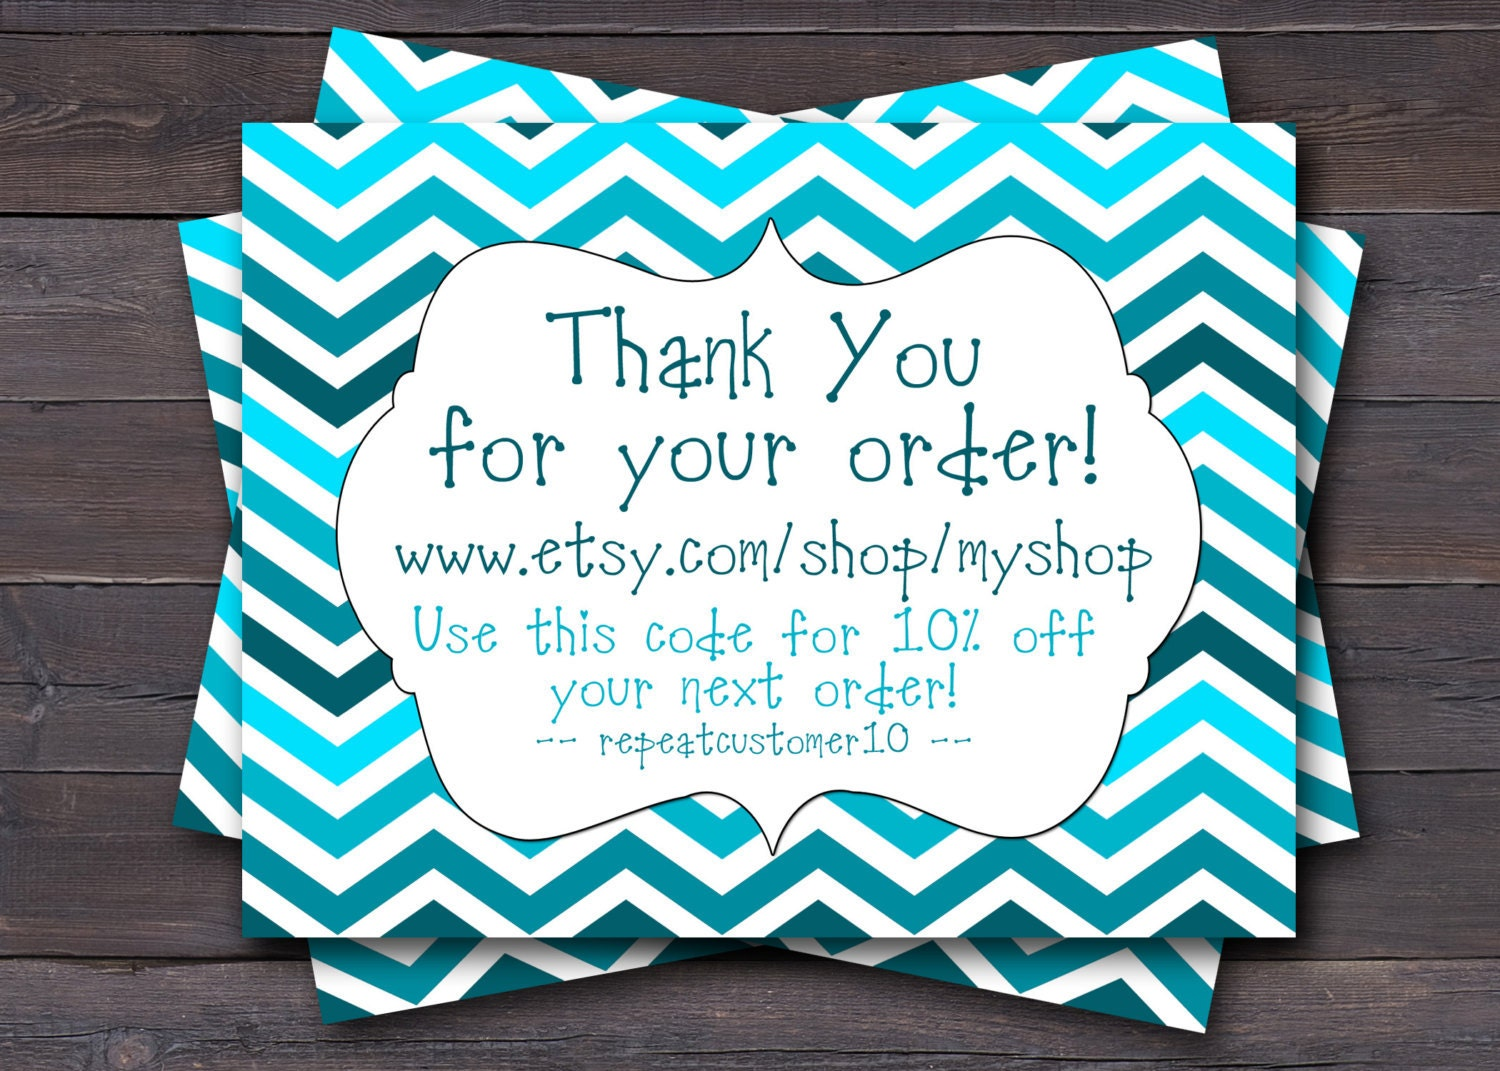 Today's top Etsy coupon code: Clearance Sale! Up to 30% Off Sitewide at The Etsy Shop VintageBigTop. Get 50 Etsy coupon codes and coupons for